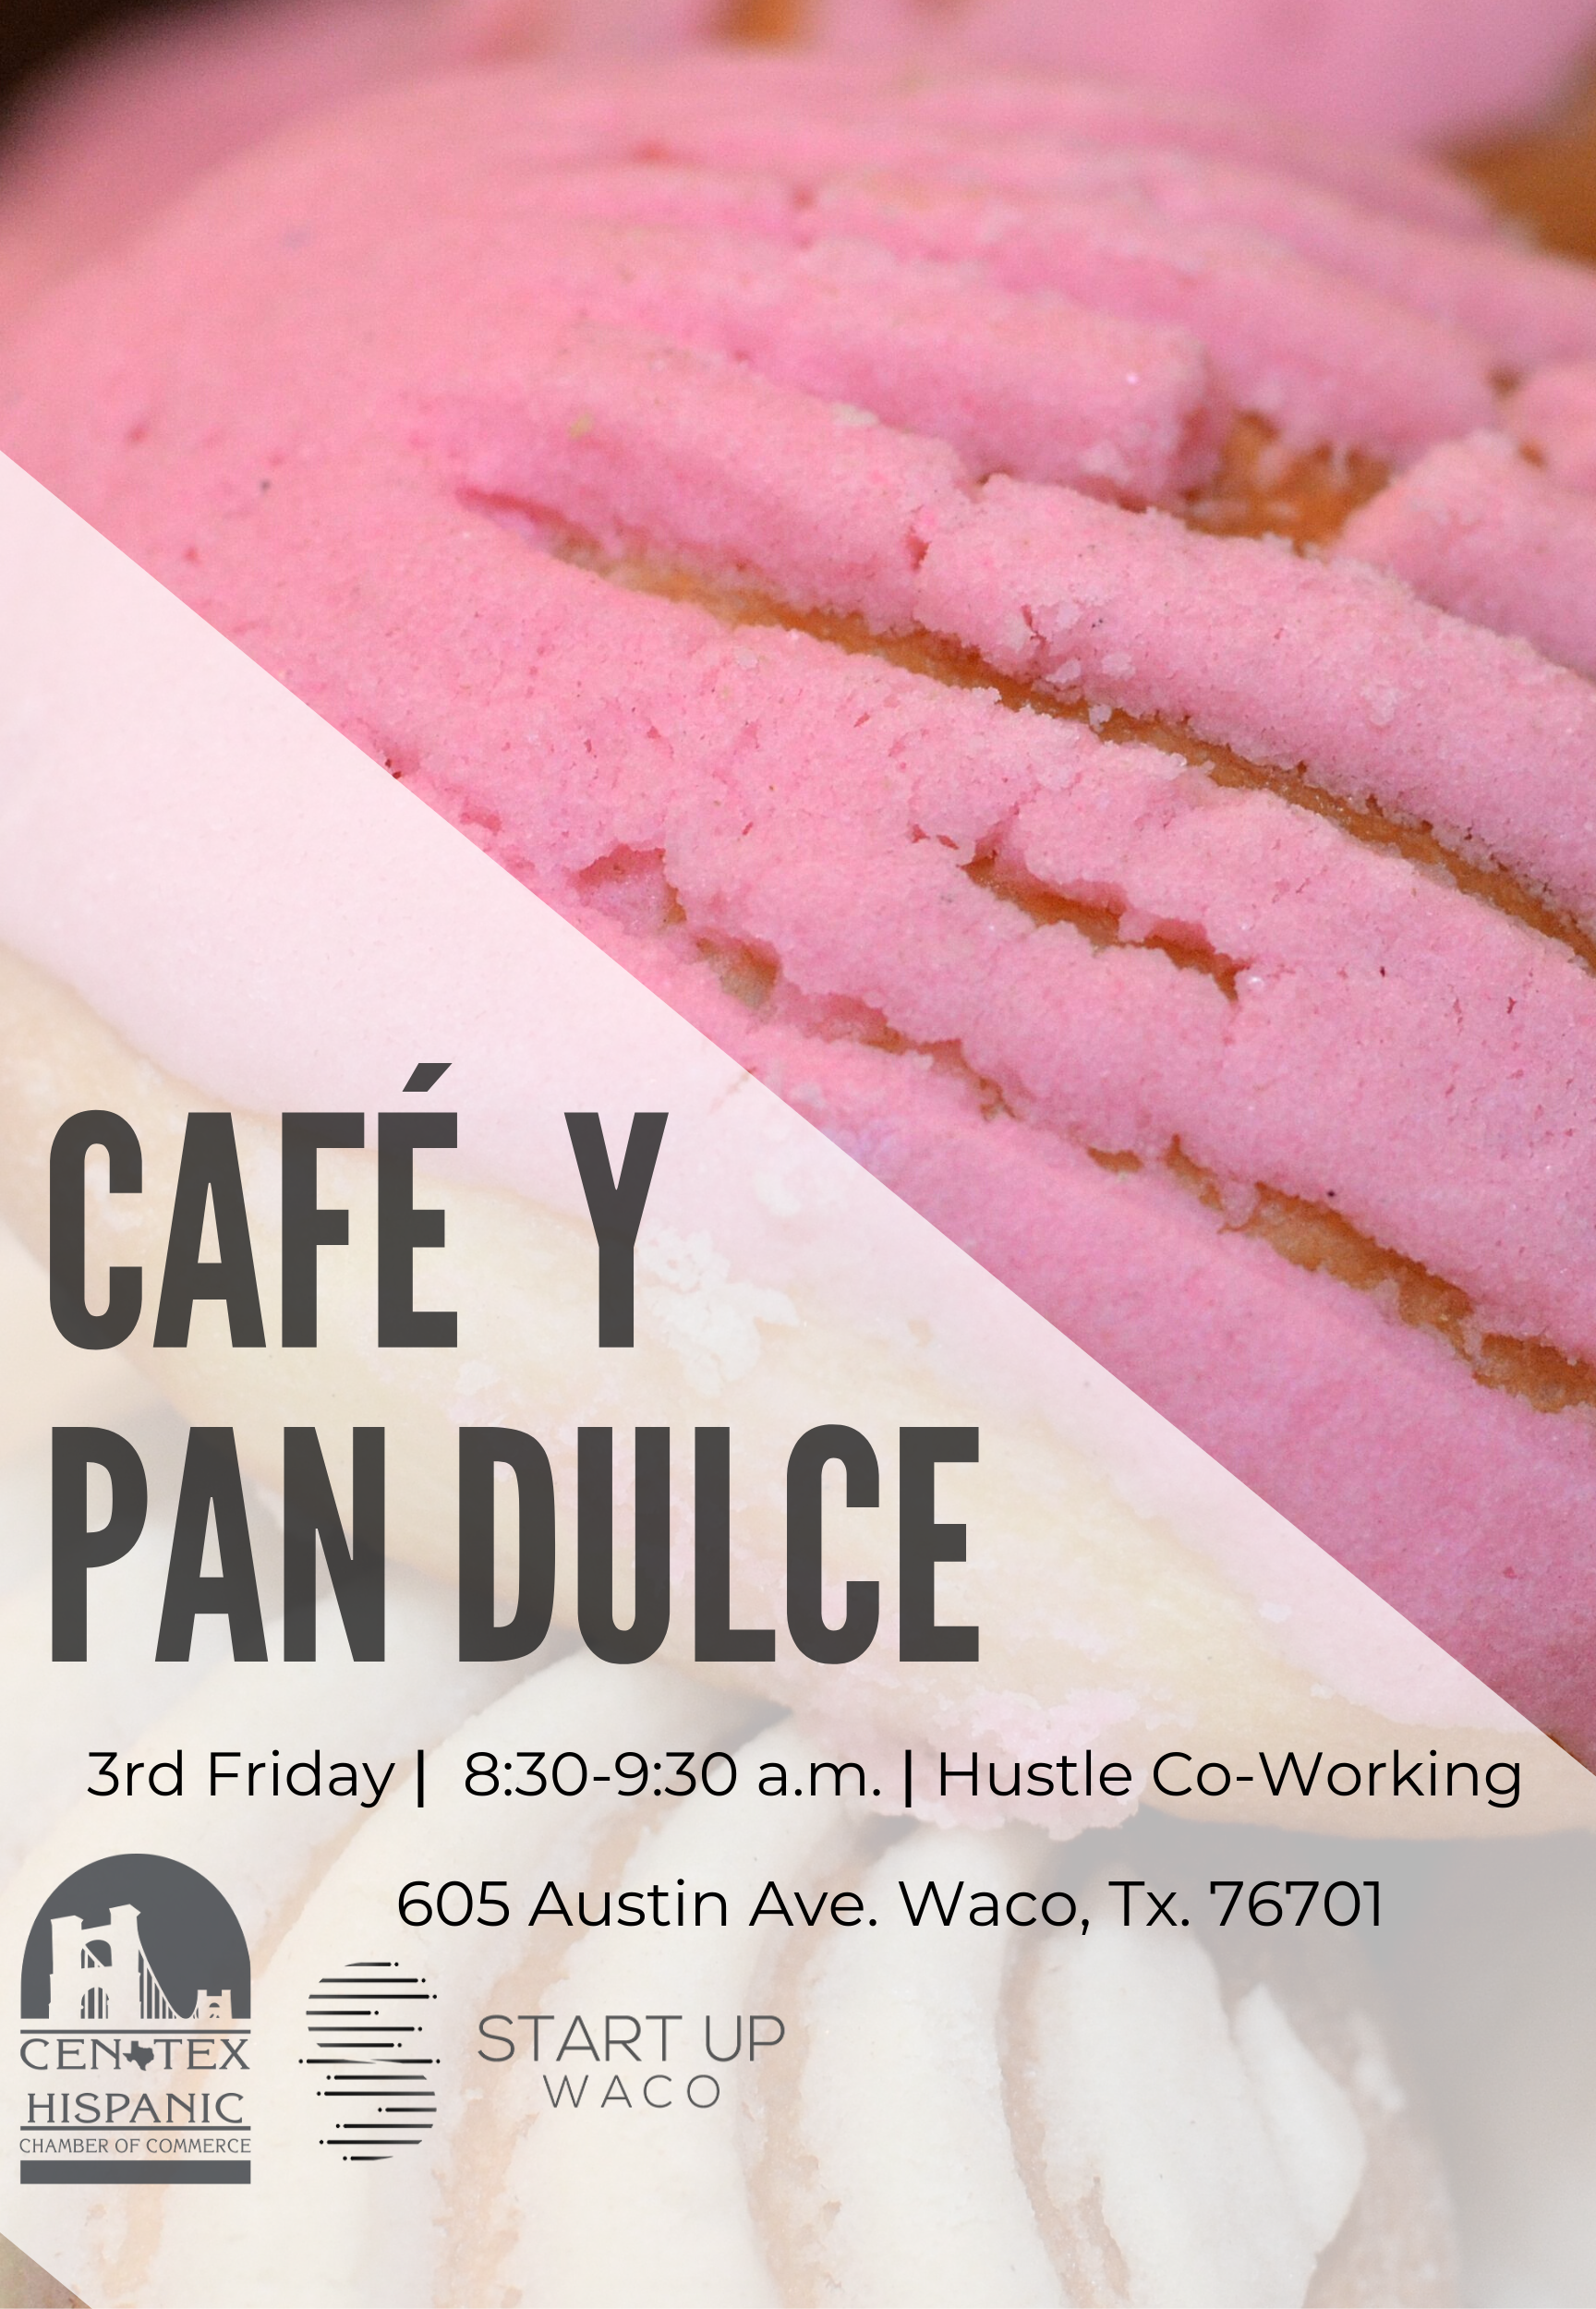 Third Friday Cafe Y Pan Dulce